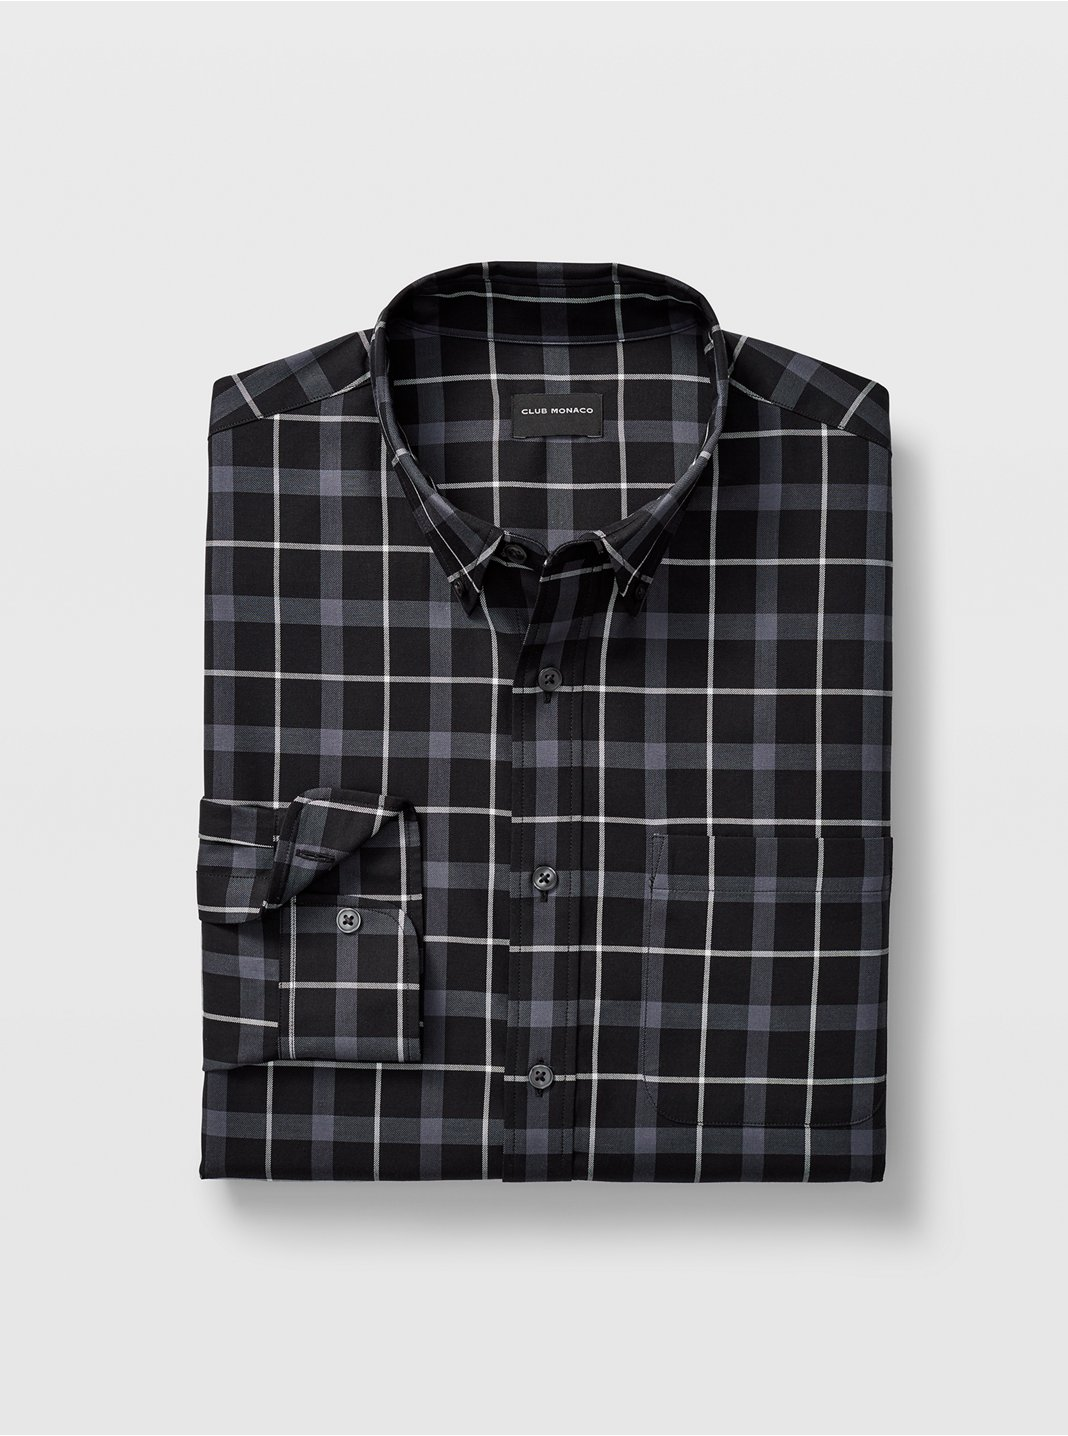 Slim Noveau Check Shirt